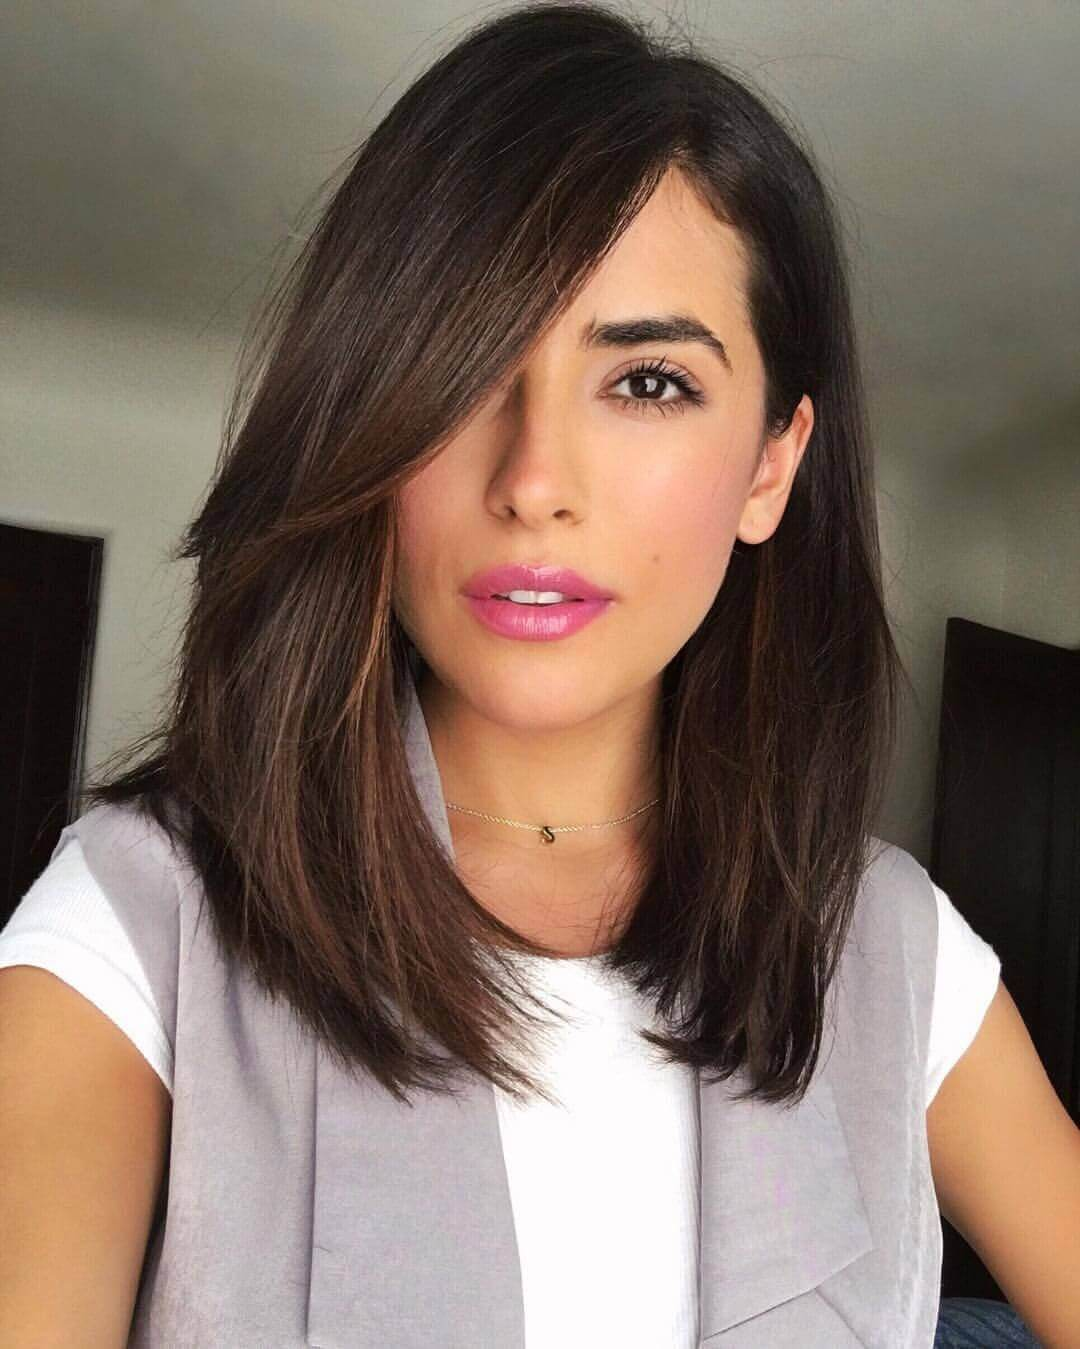 Woman Hairstyles 2019: Best 2019 Hairstyles For Women